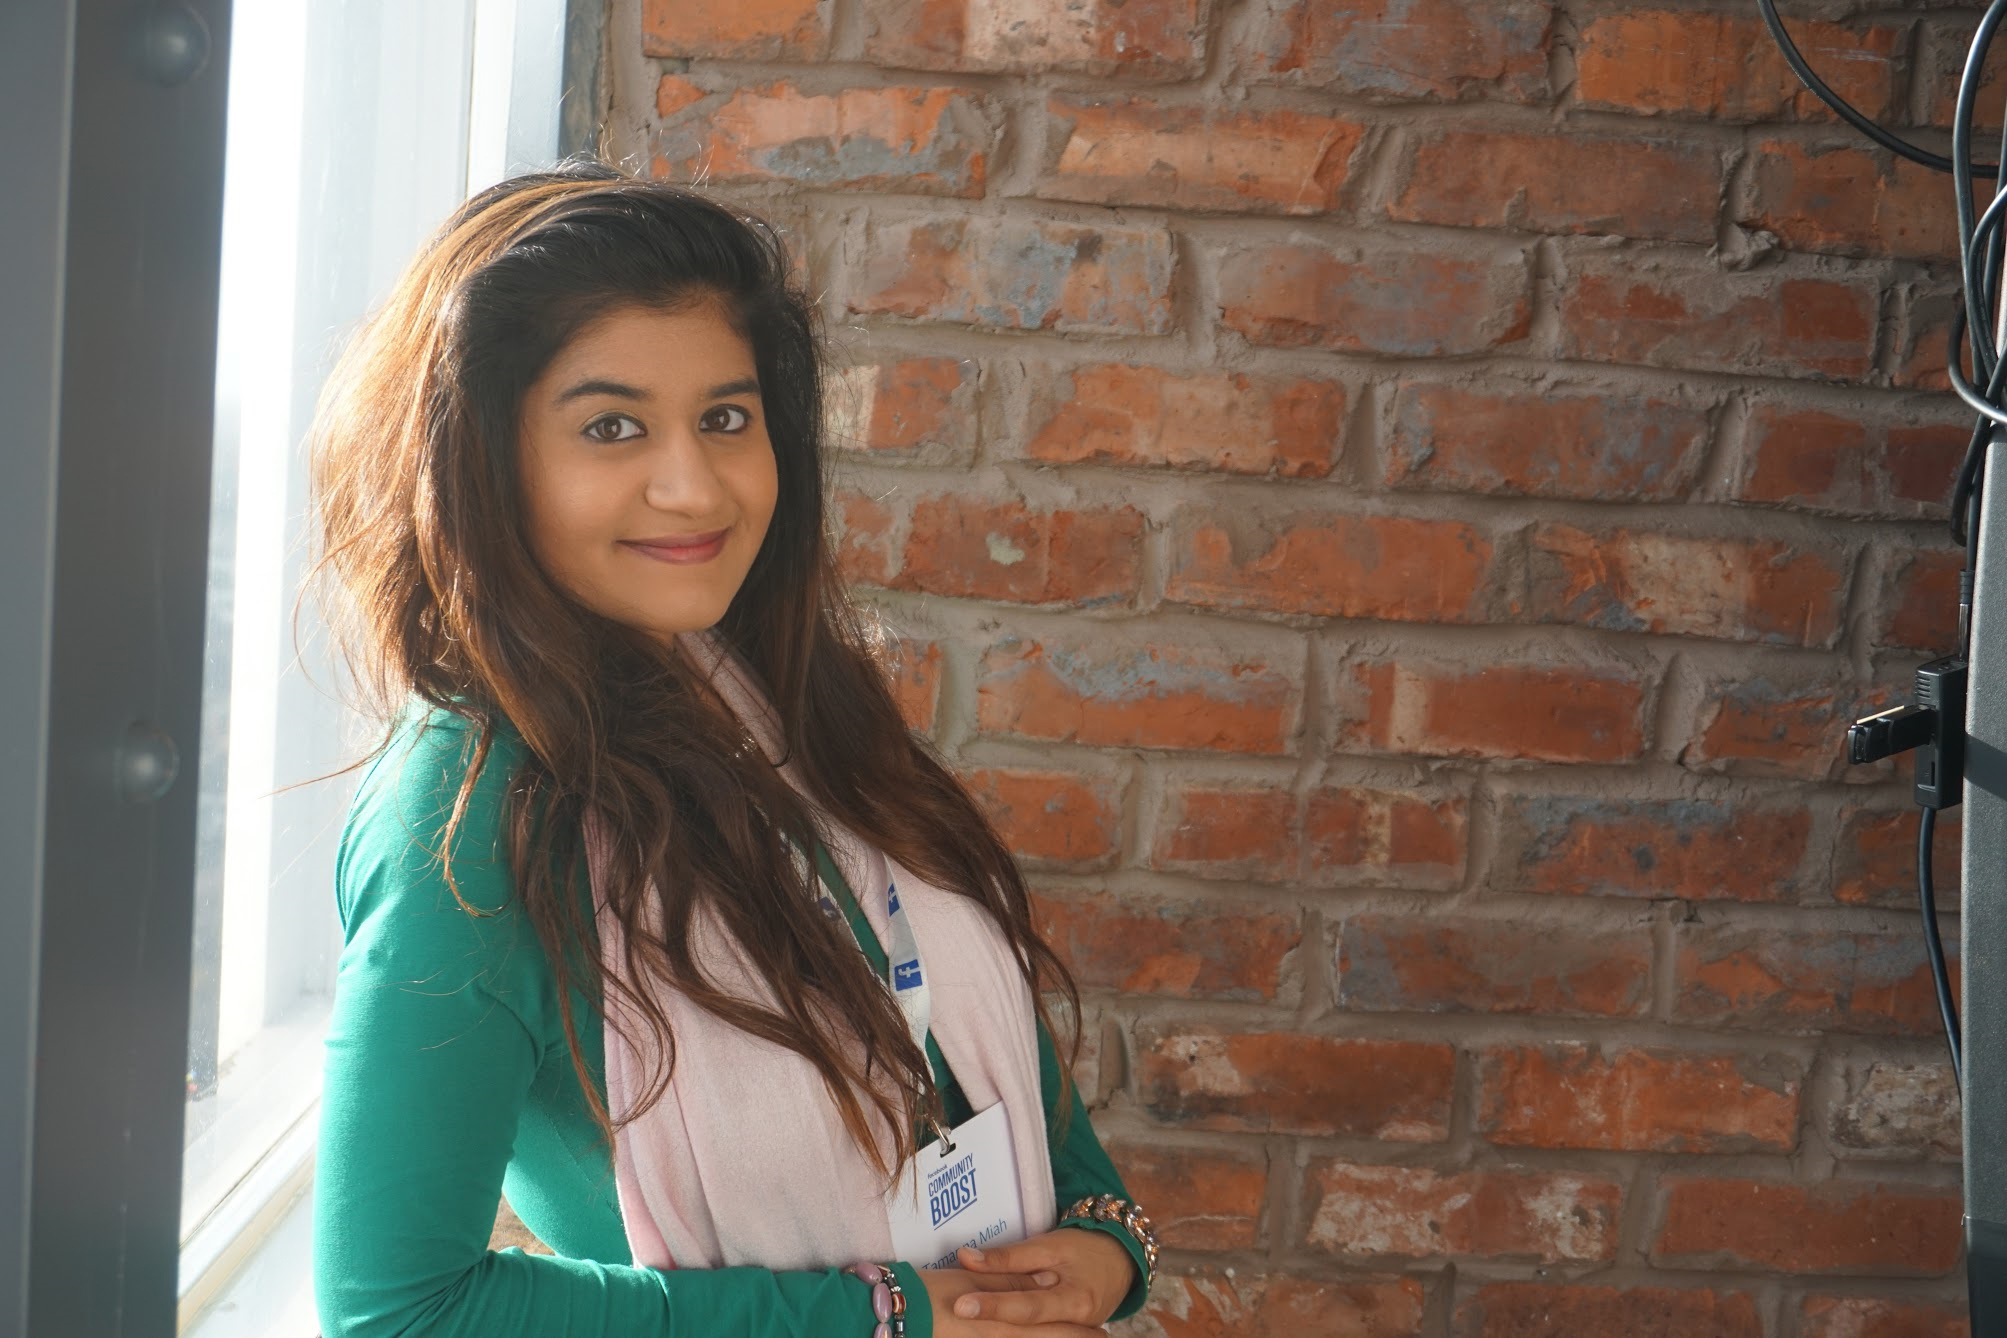 Tamanna Miah campaigns to help children deal with the impact of being targeted for their skin colour after suffering years of abuse herself